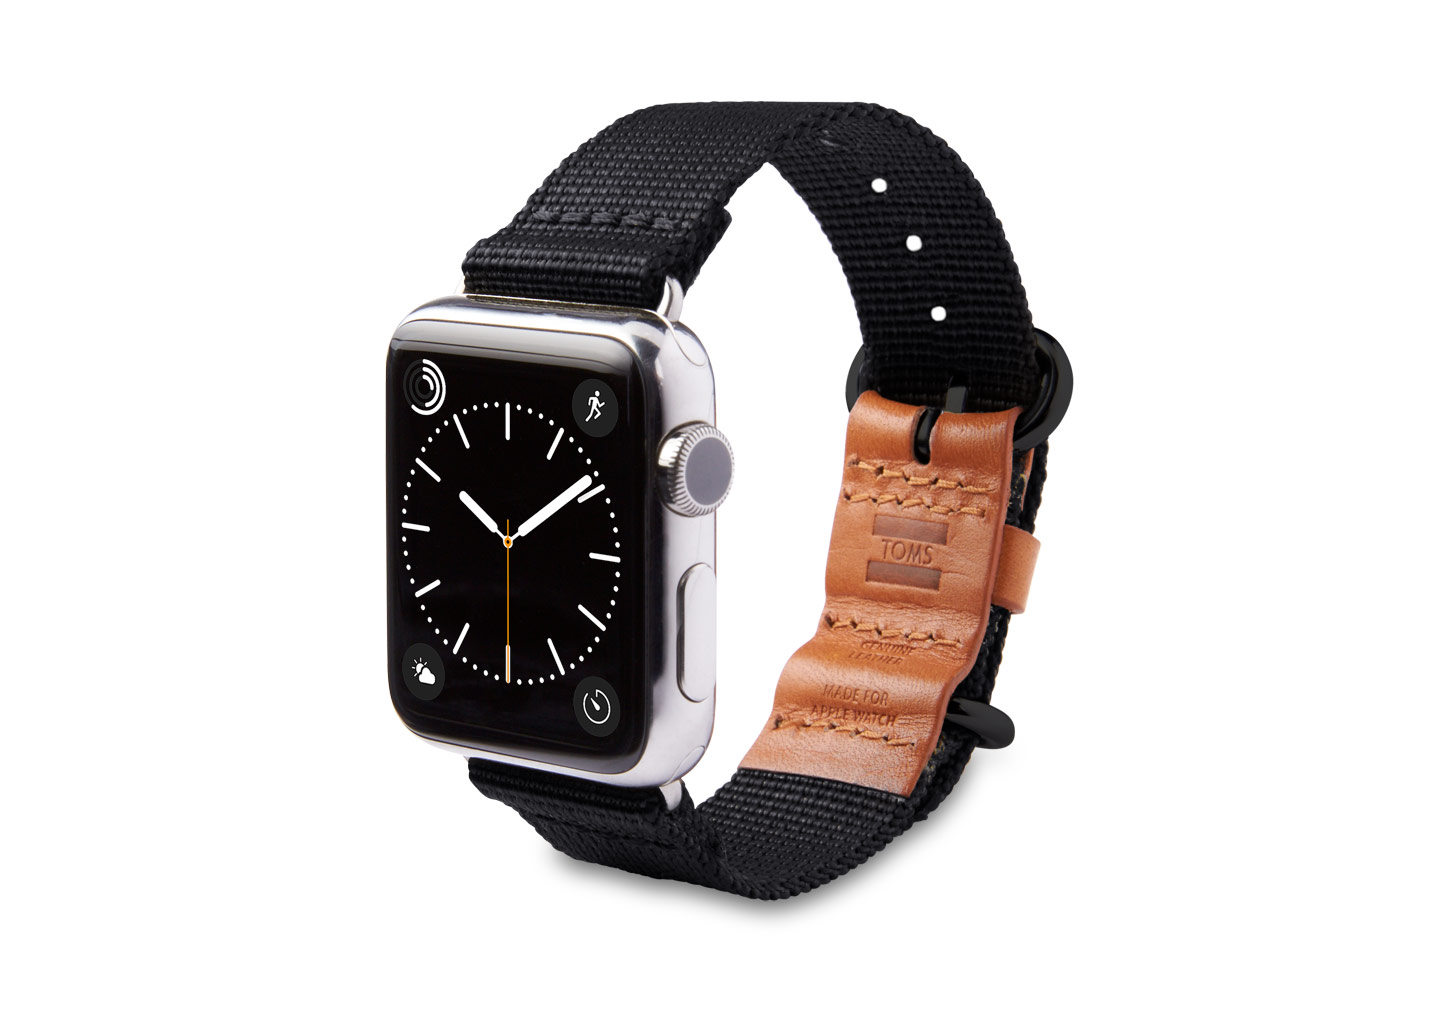 apple-watch-toms-new-bands